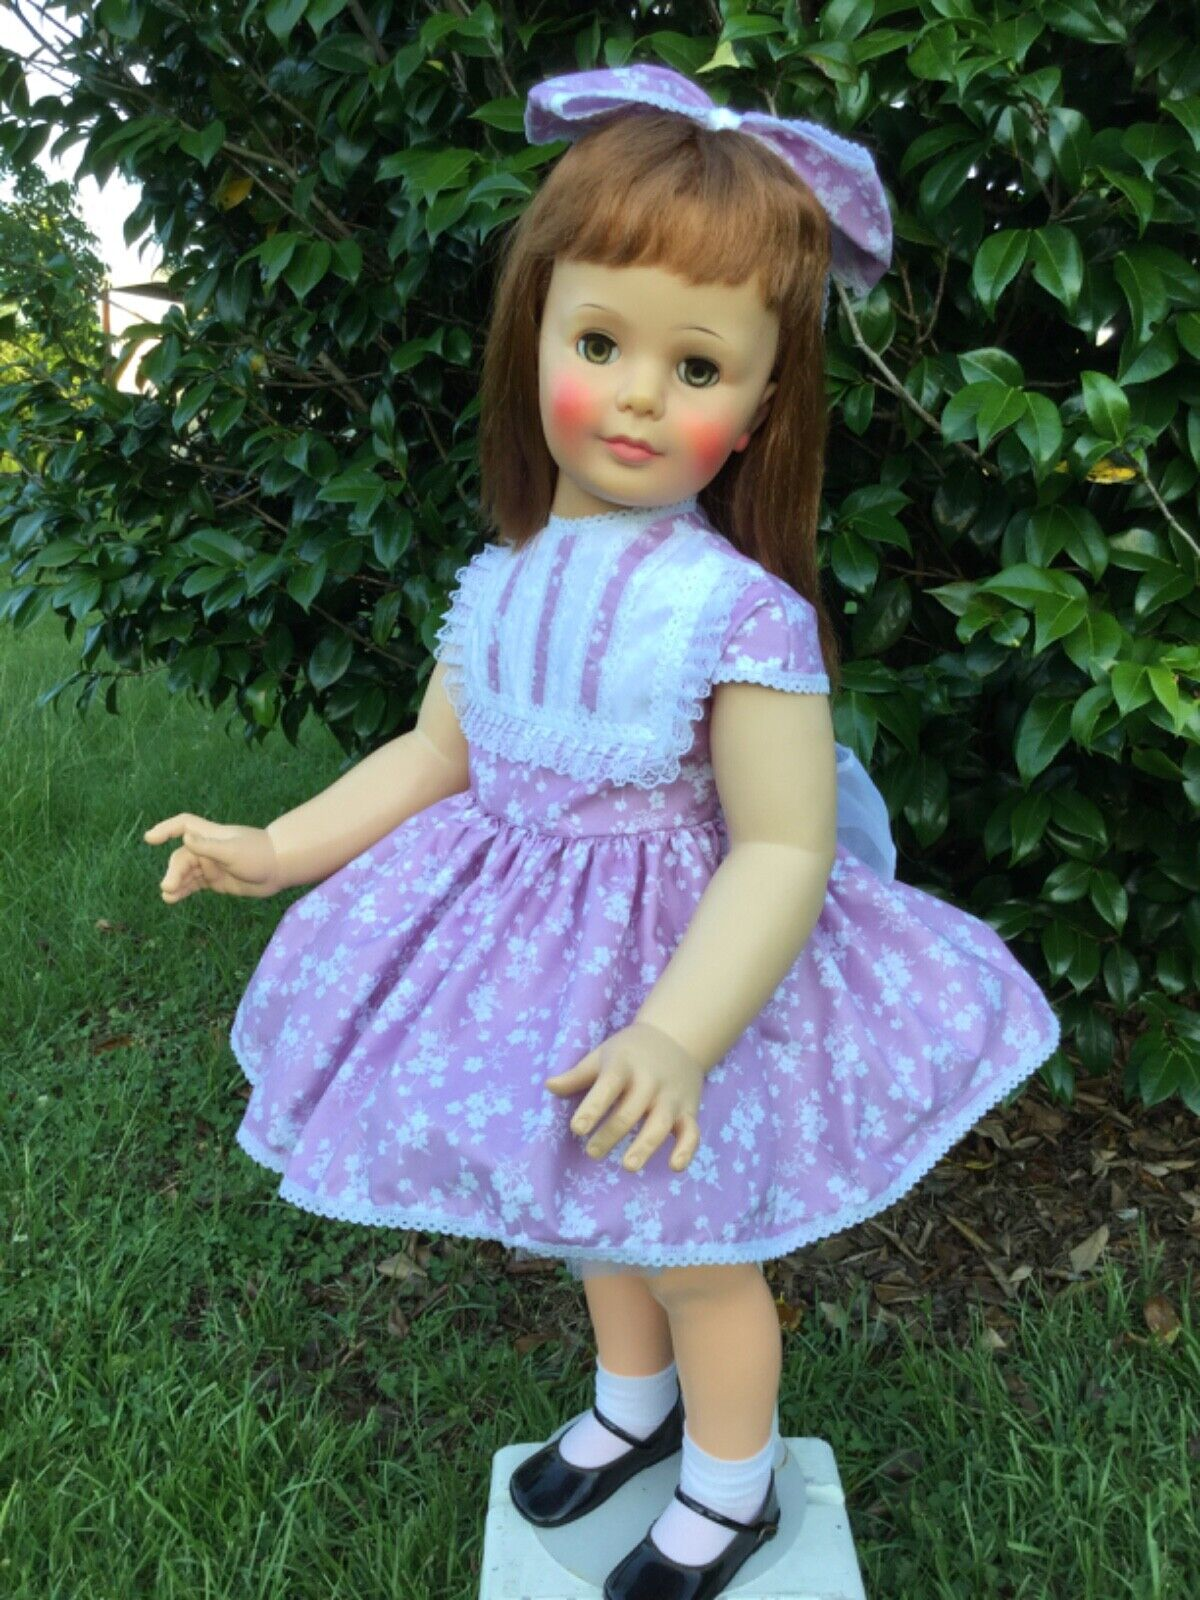 NEW Dress, Petticoat, Panty, Necklace Ribbon For Patti Playpal Or 35 - 36 Doll - $51.93